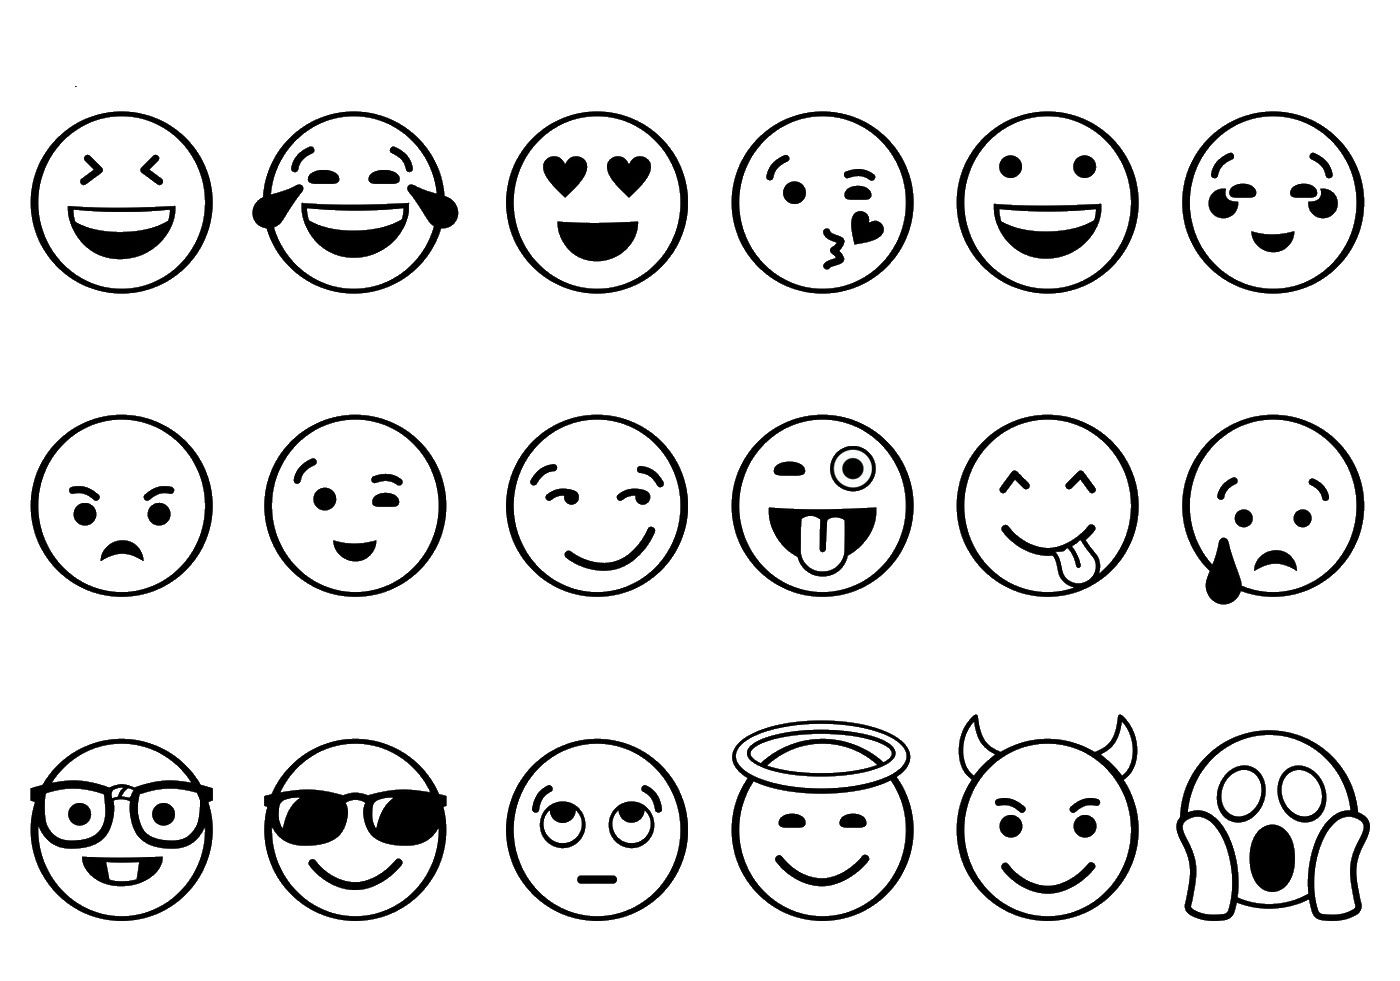 Emoji Coloring Pages Ideas To Express Your Feeling Free Coloring Sheets Emoji Coloring Pages Easy Coloring Pages Coloring Pages